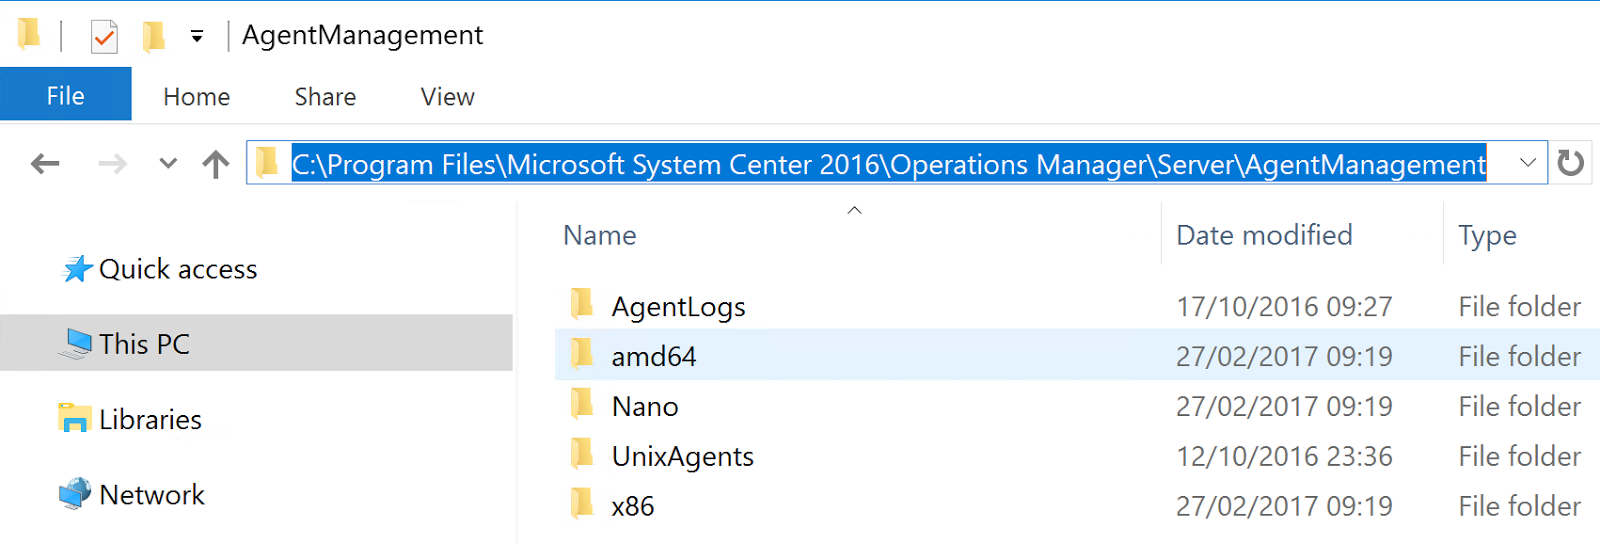 Kevin Greene IT Blog: SCOM 2016 Agent Crashing Legacy IIS